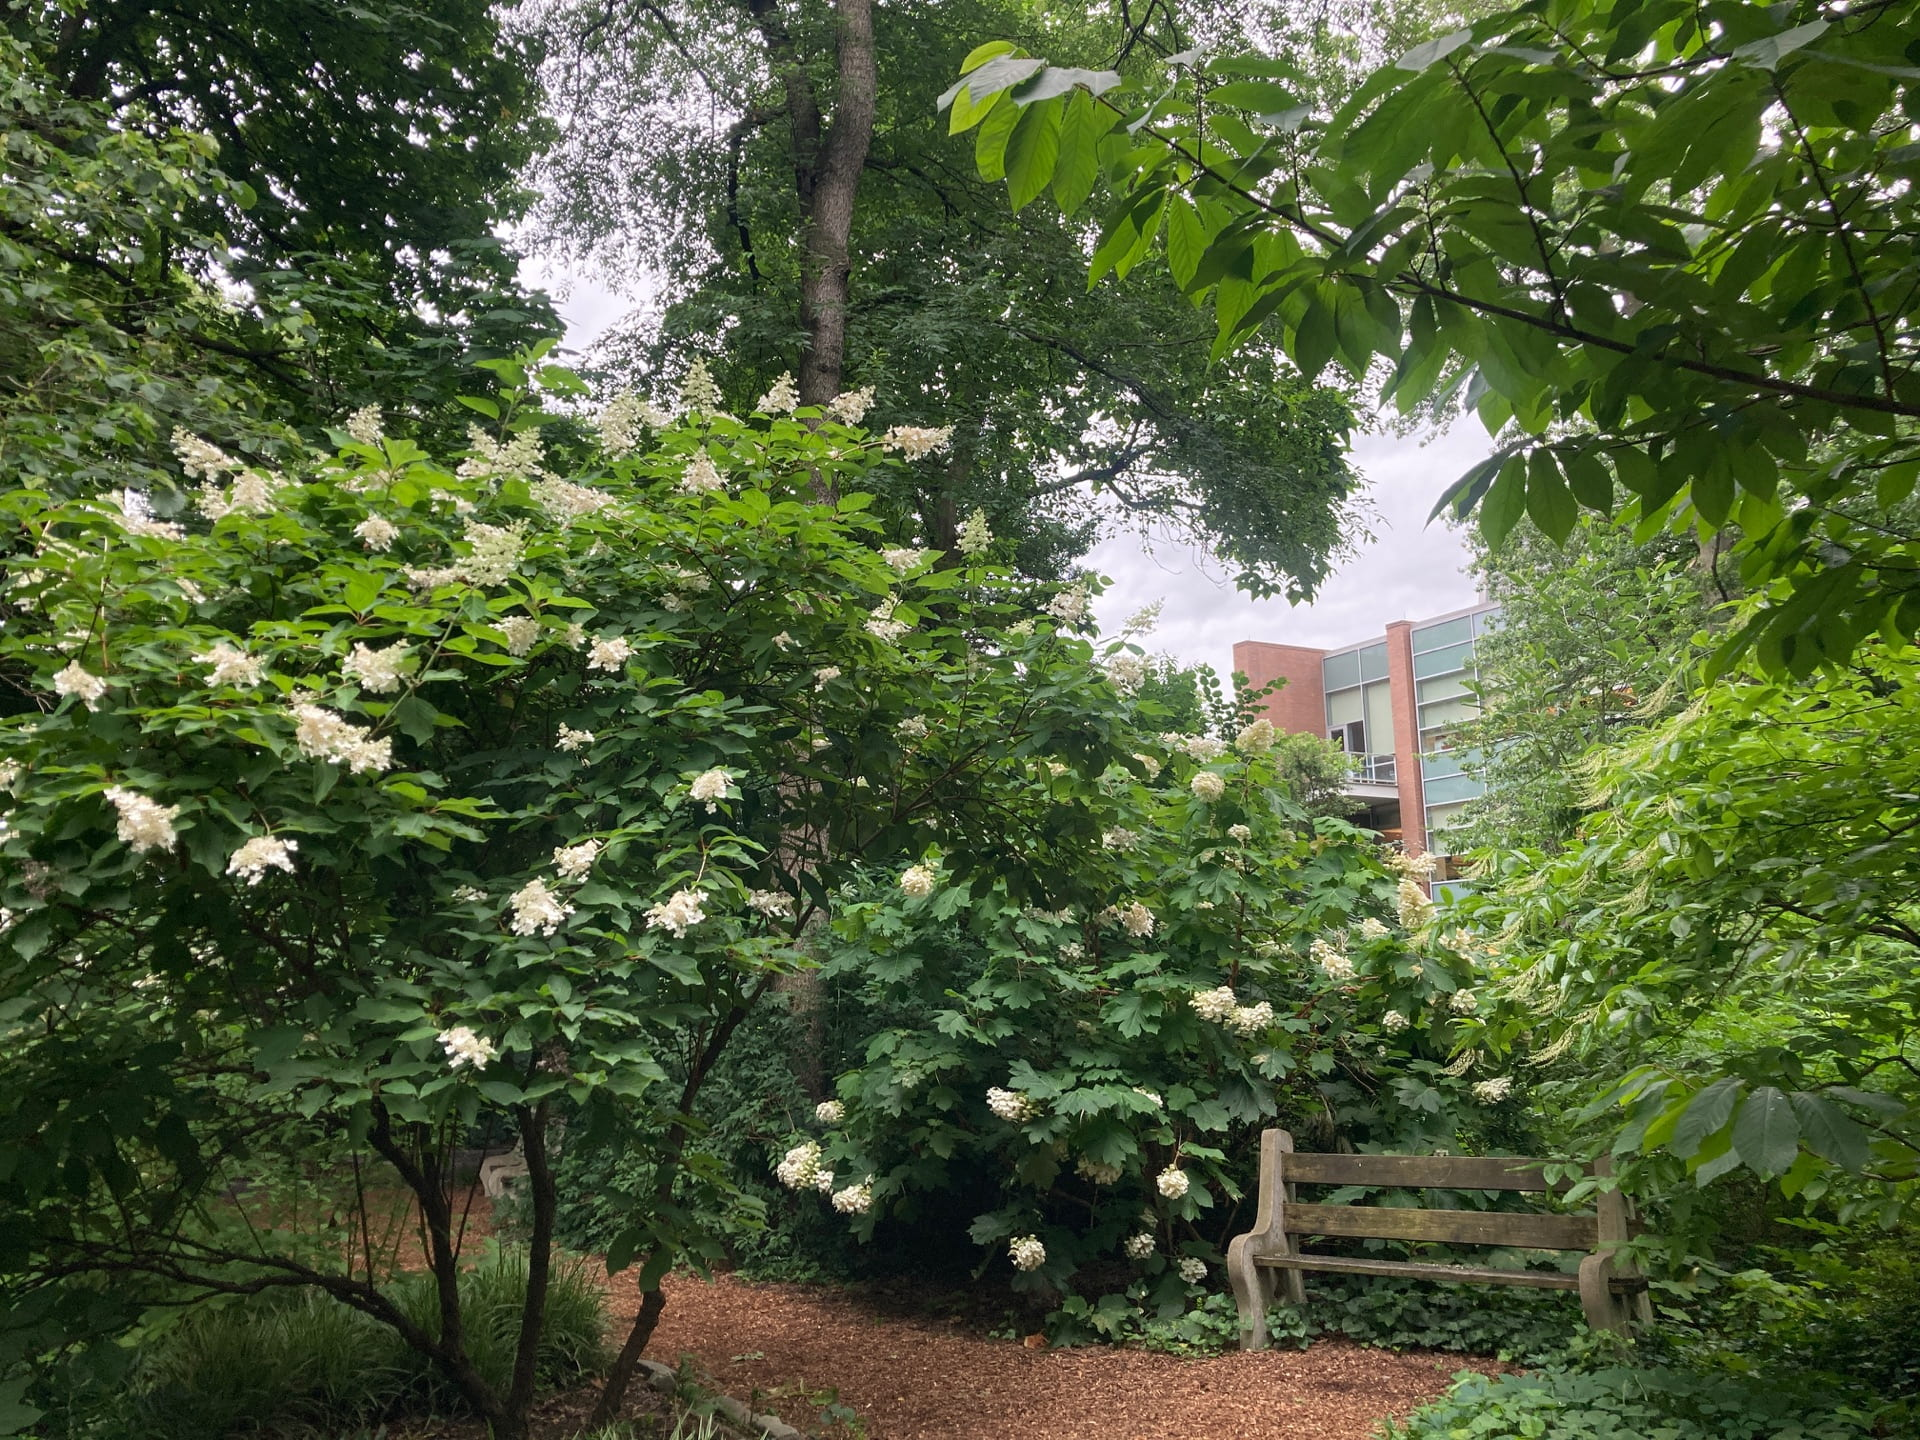 Hydrangea season arrives at the park. Here H. paniculata and H. quercifola border the pathway.